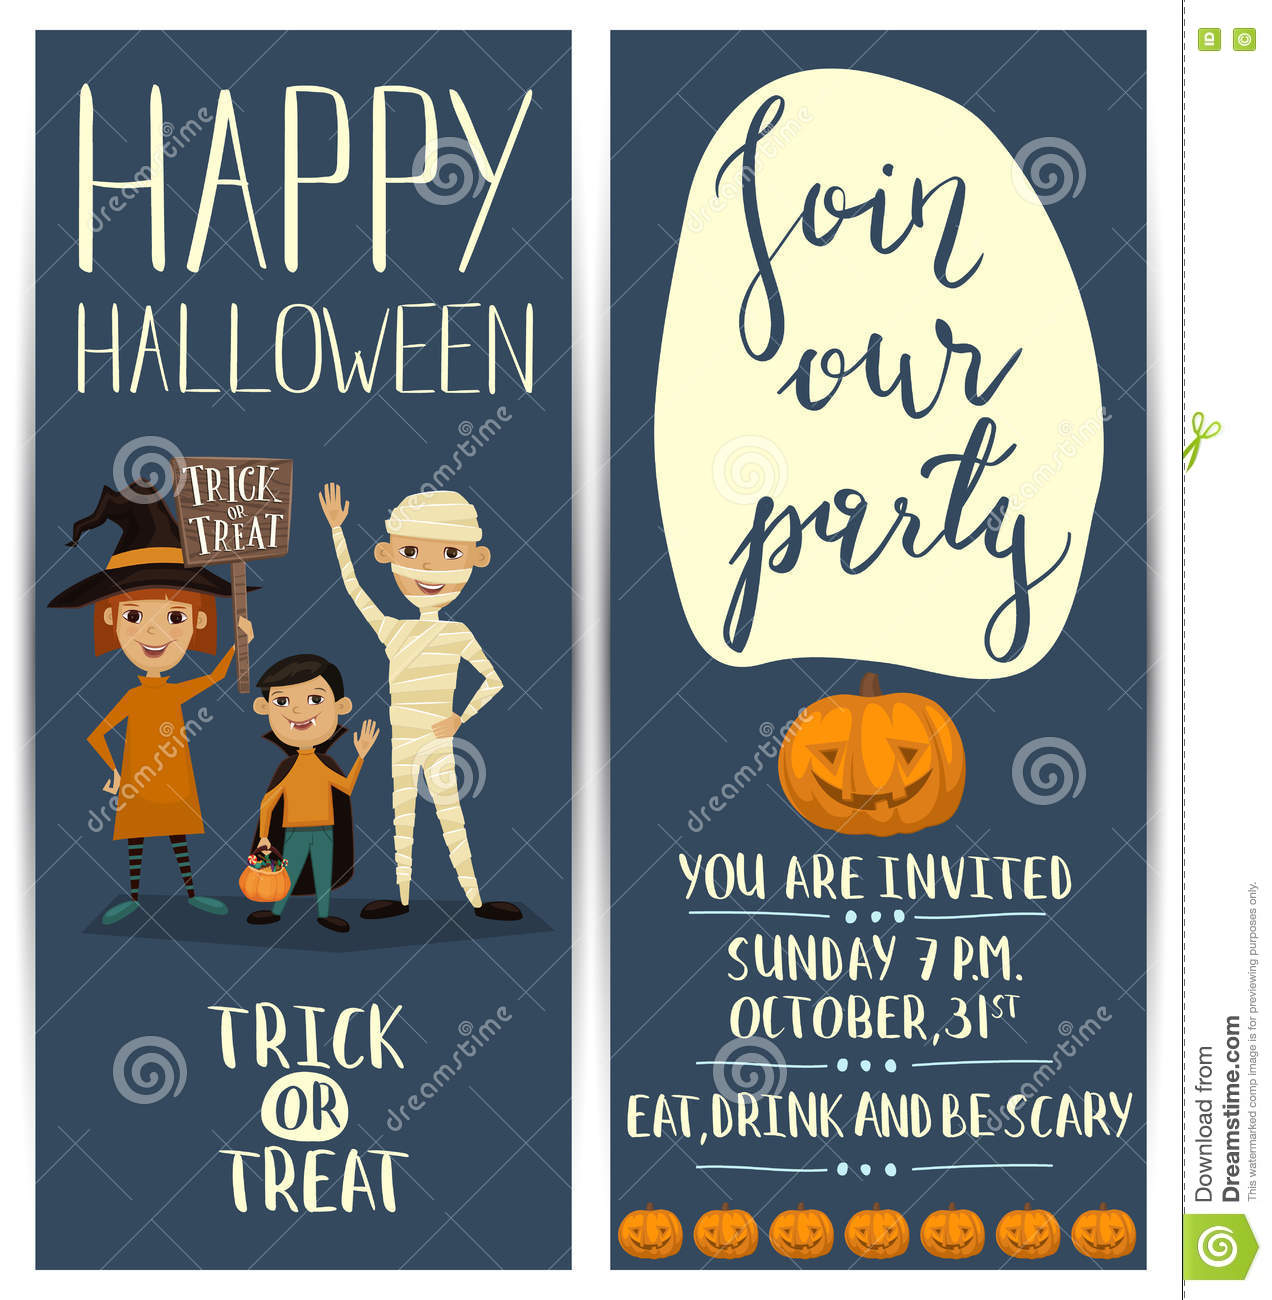 Halloween Party Vertical Flyers Set With Kids Stock Vector - Image ...